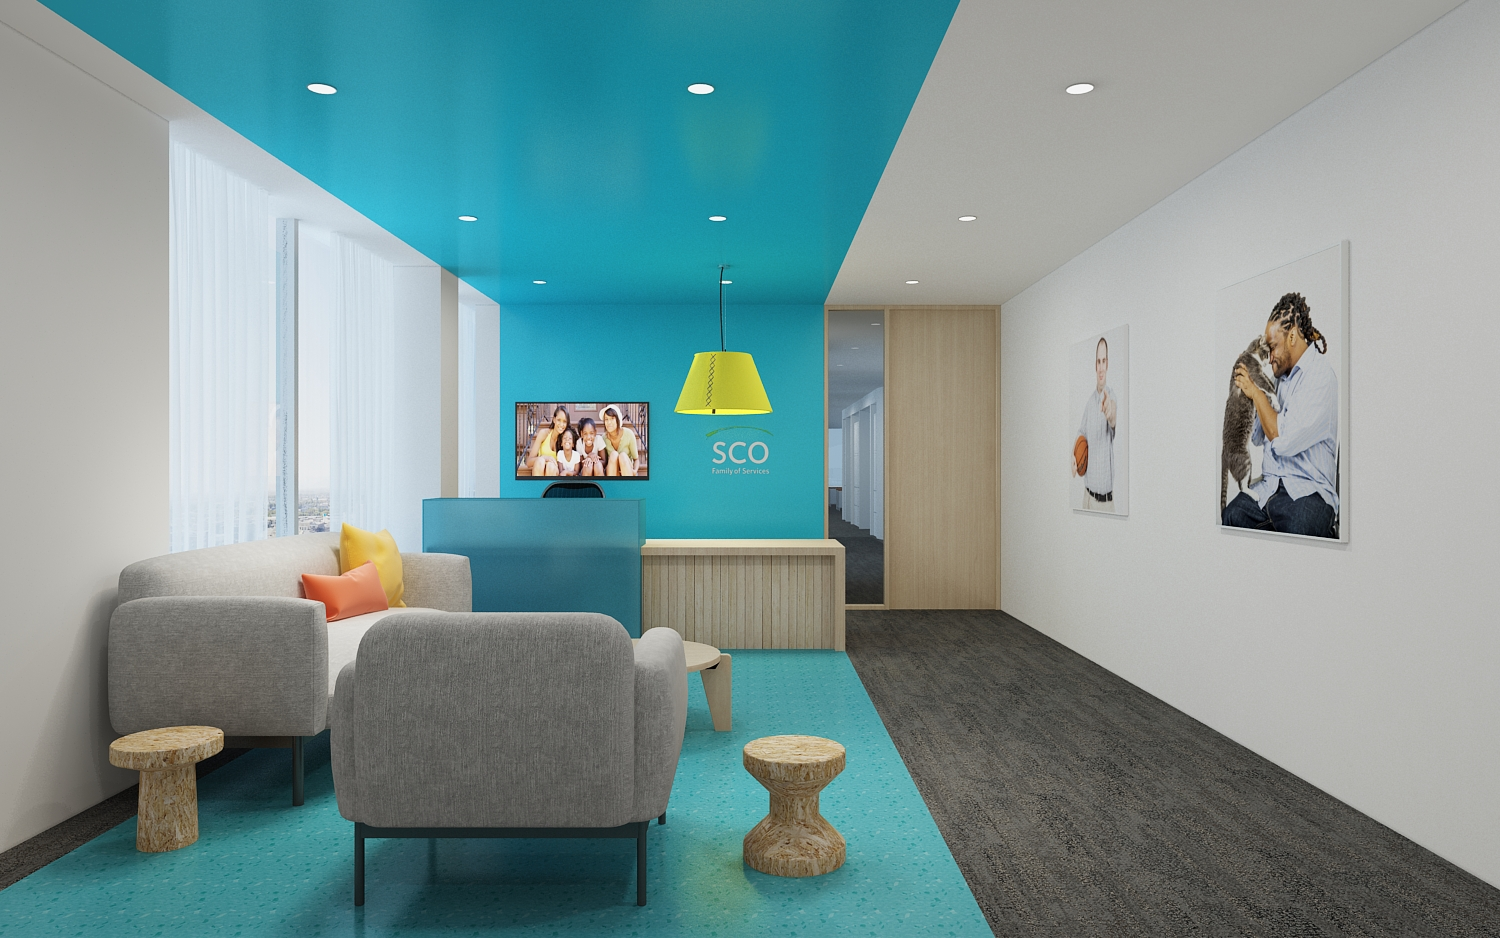 The approachable reception area at SCO Family of Services by Spacesmith